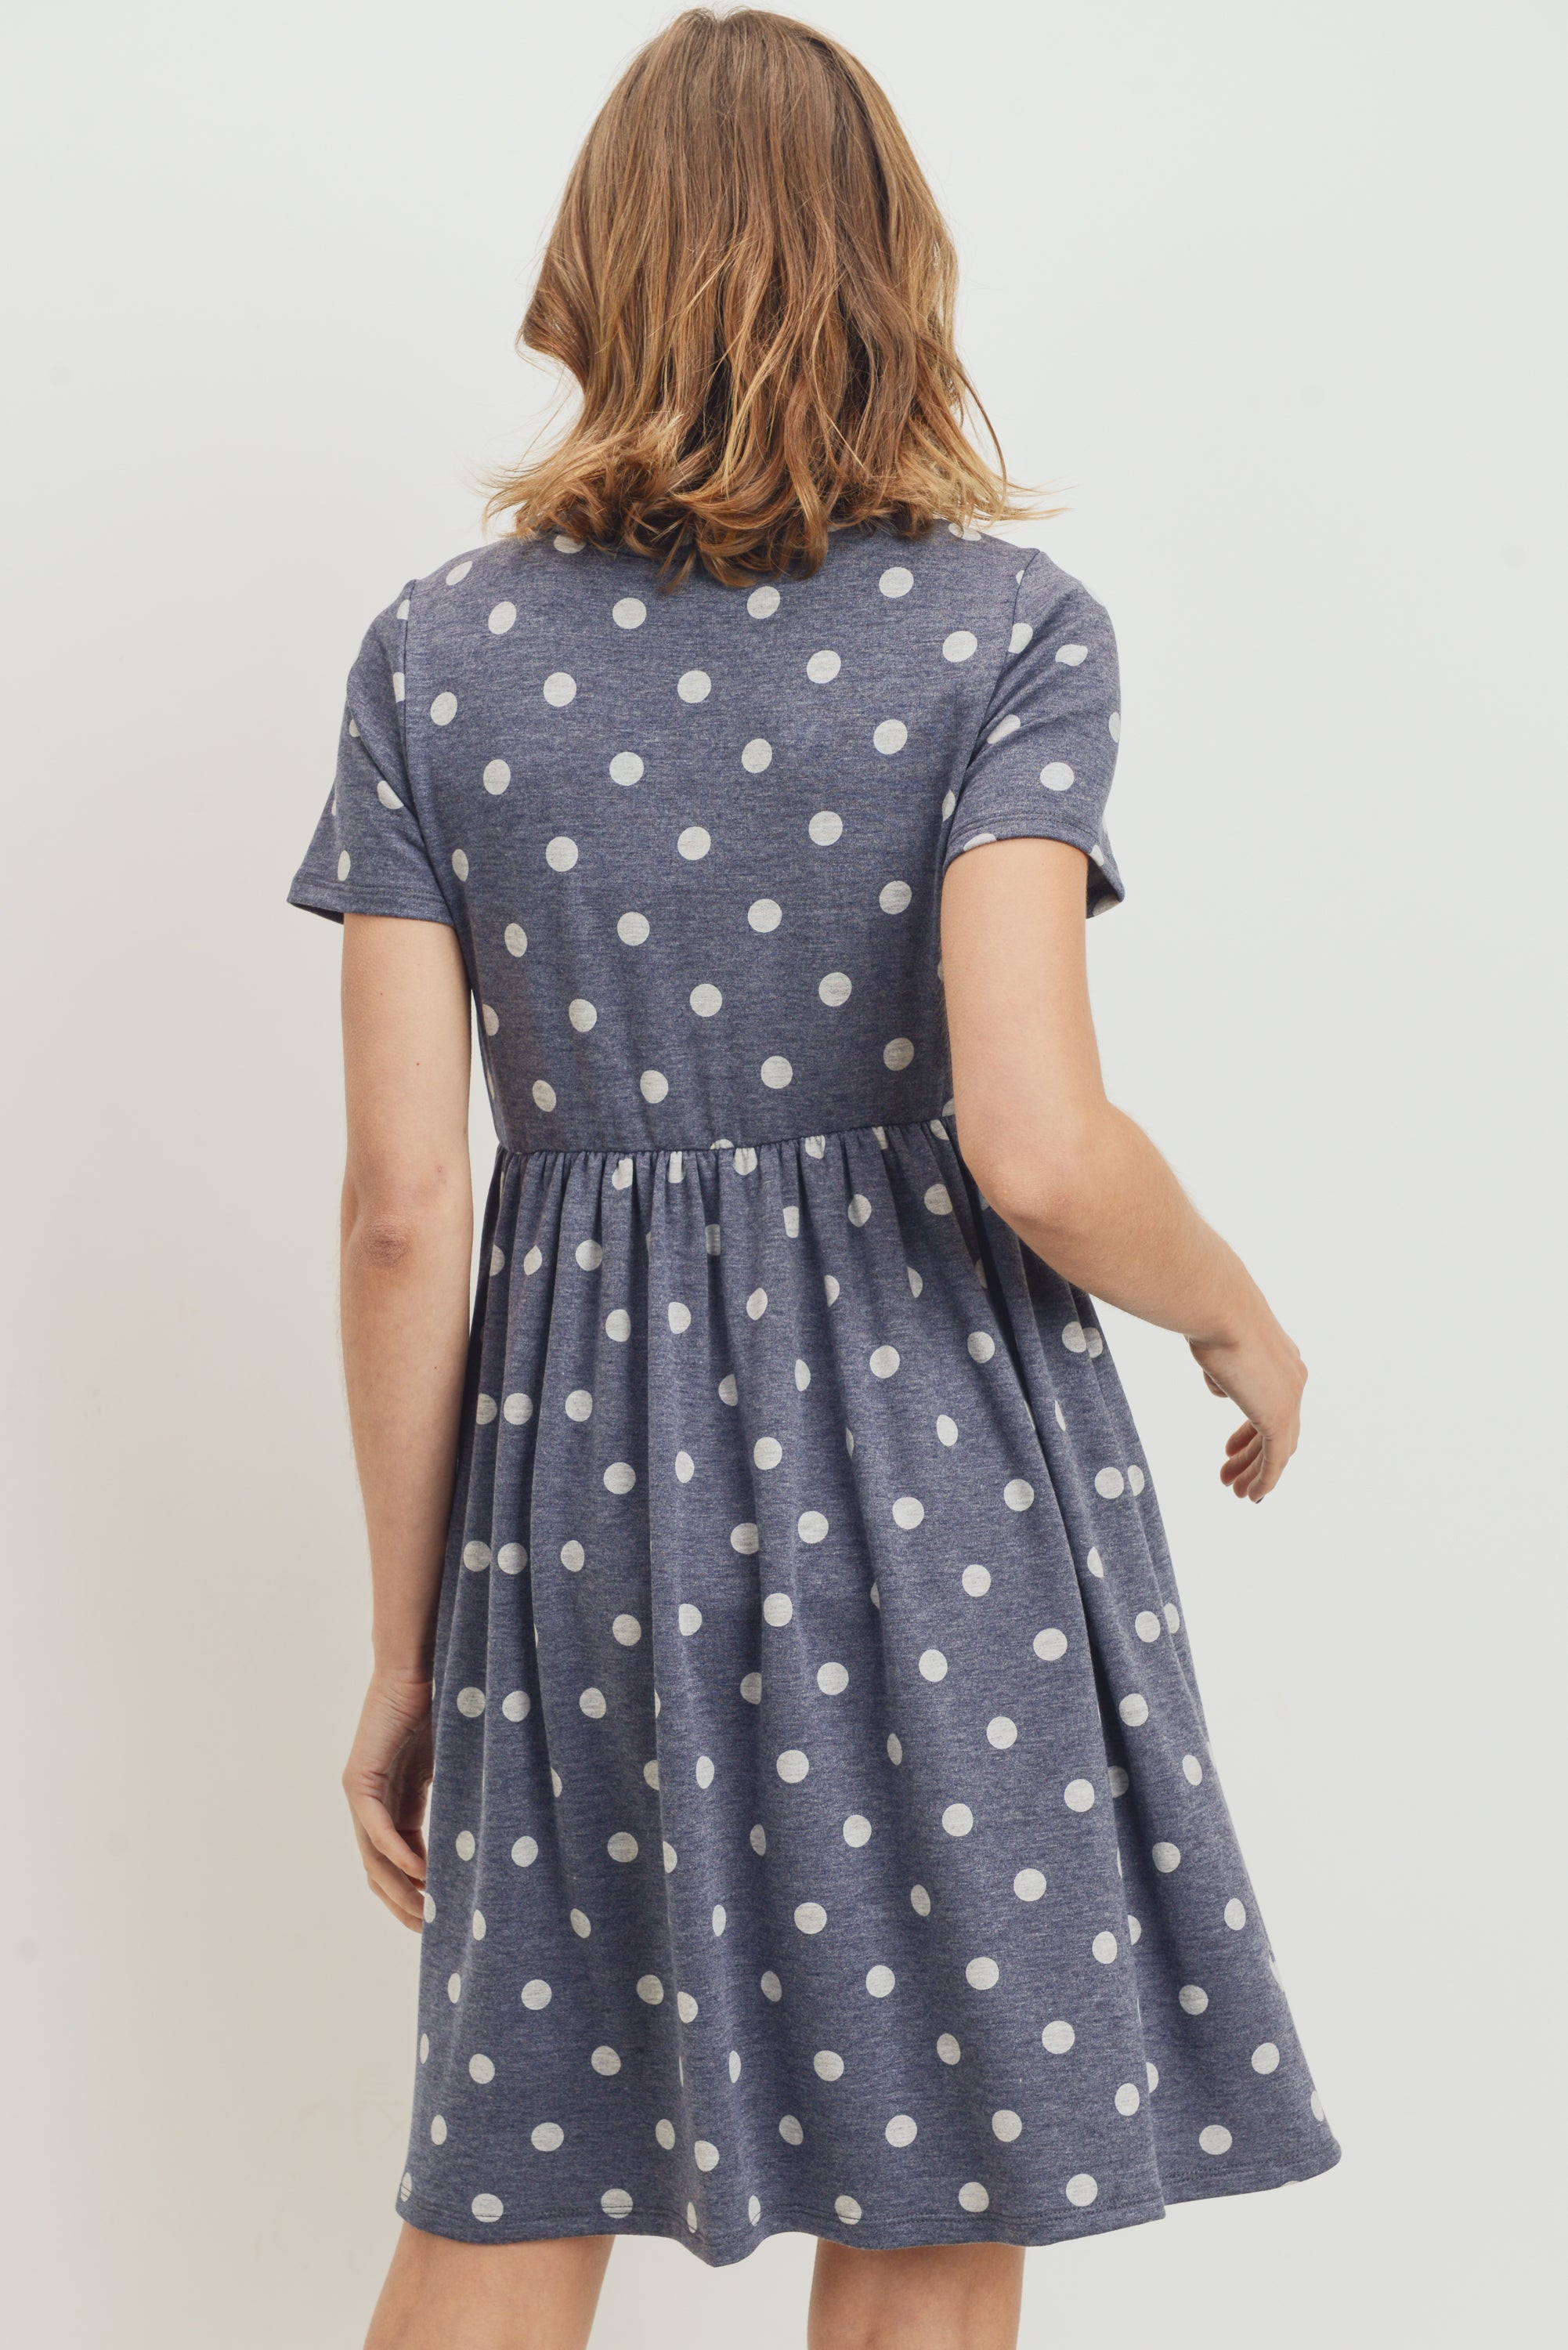 Polka Dot Babydoll Maternity Dress